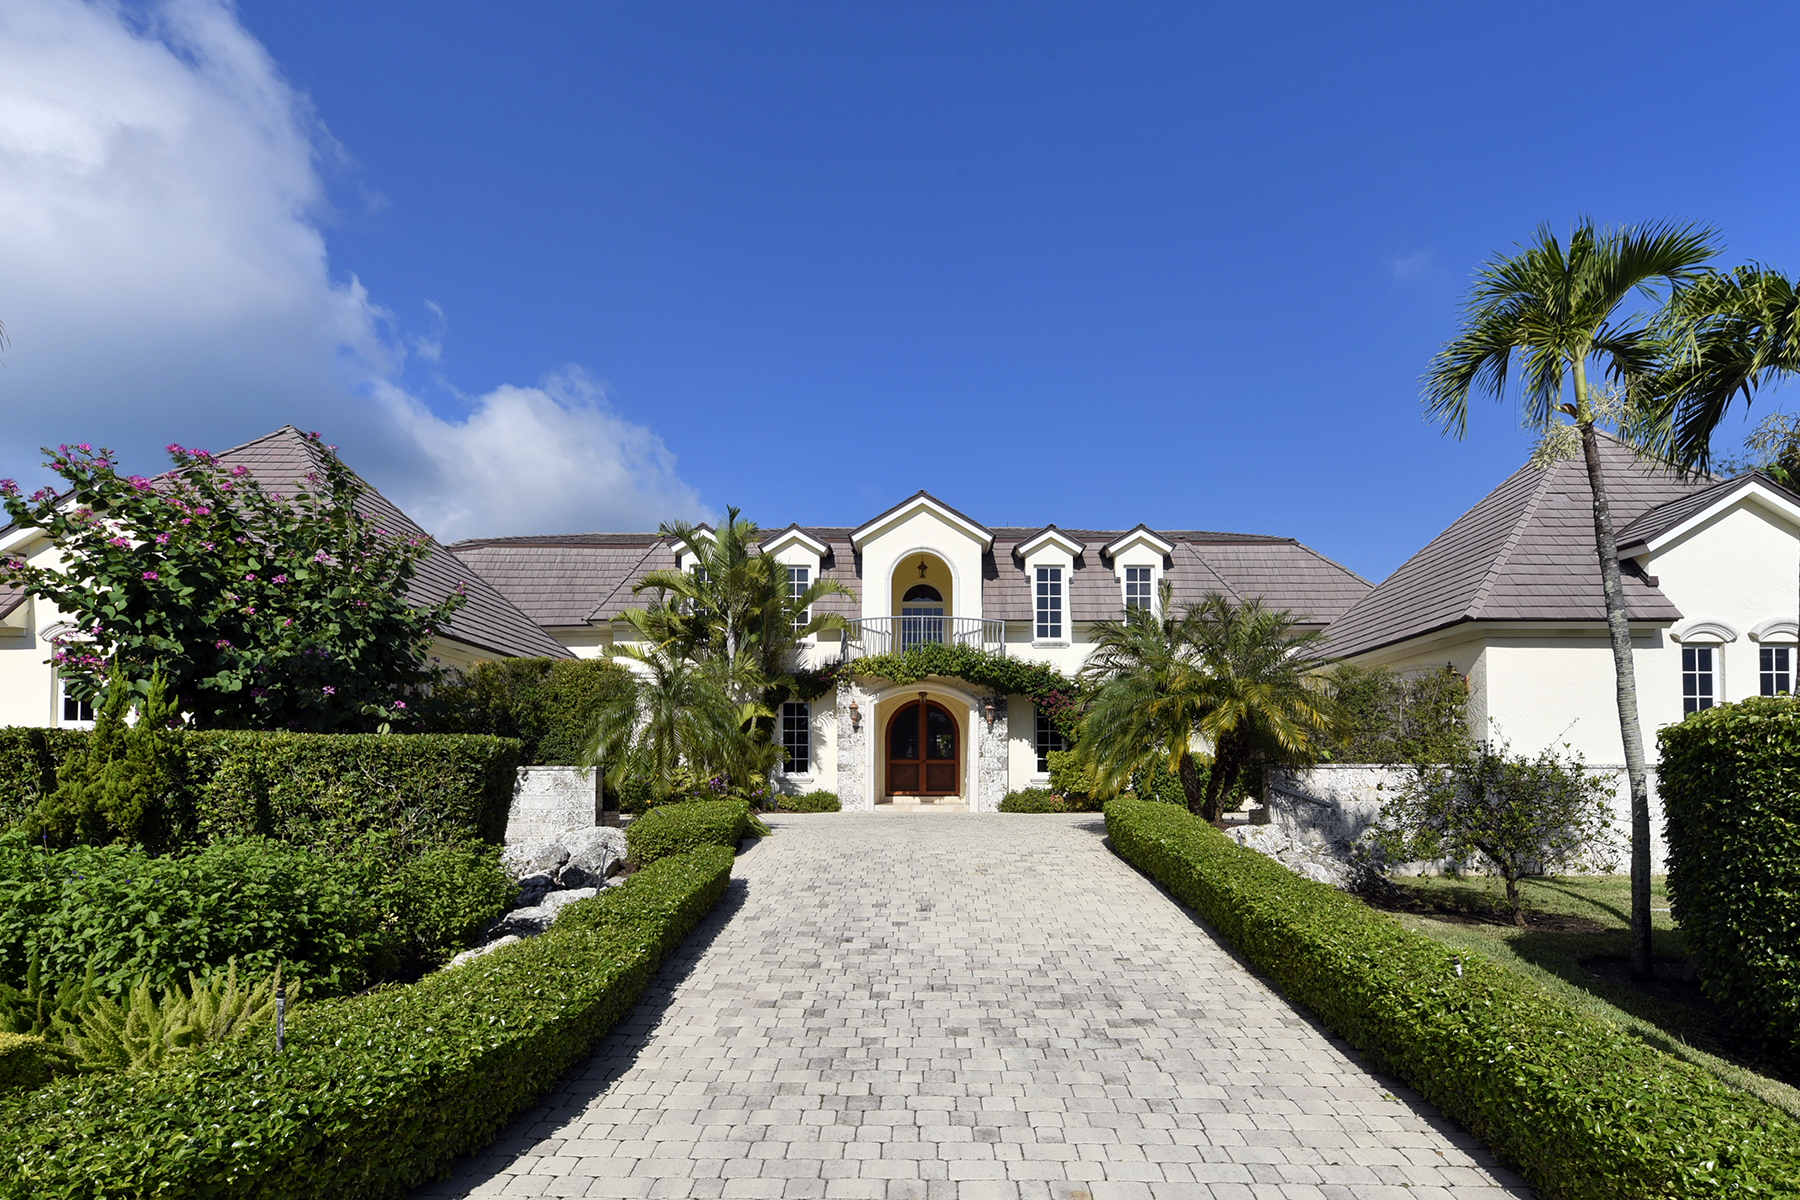 Villa per Vendita alle ore Expansive Waterfront Home at Ocean Reef 25 Bay Ridge Road Key Largo, Florida, 33037 Stati Uniti